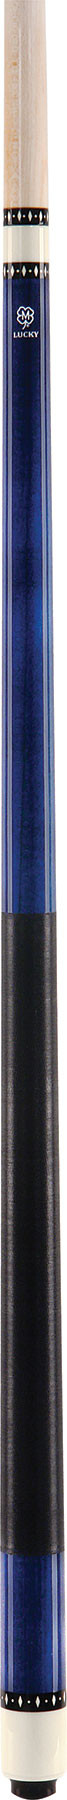 McDermott Lucky Pool Cue, L7, Blue